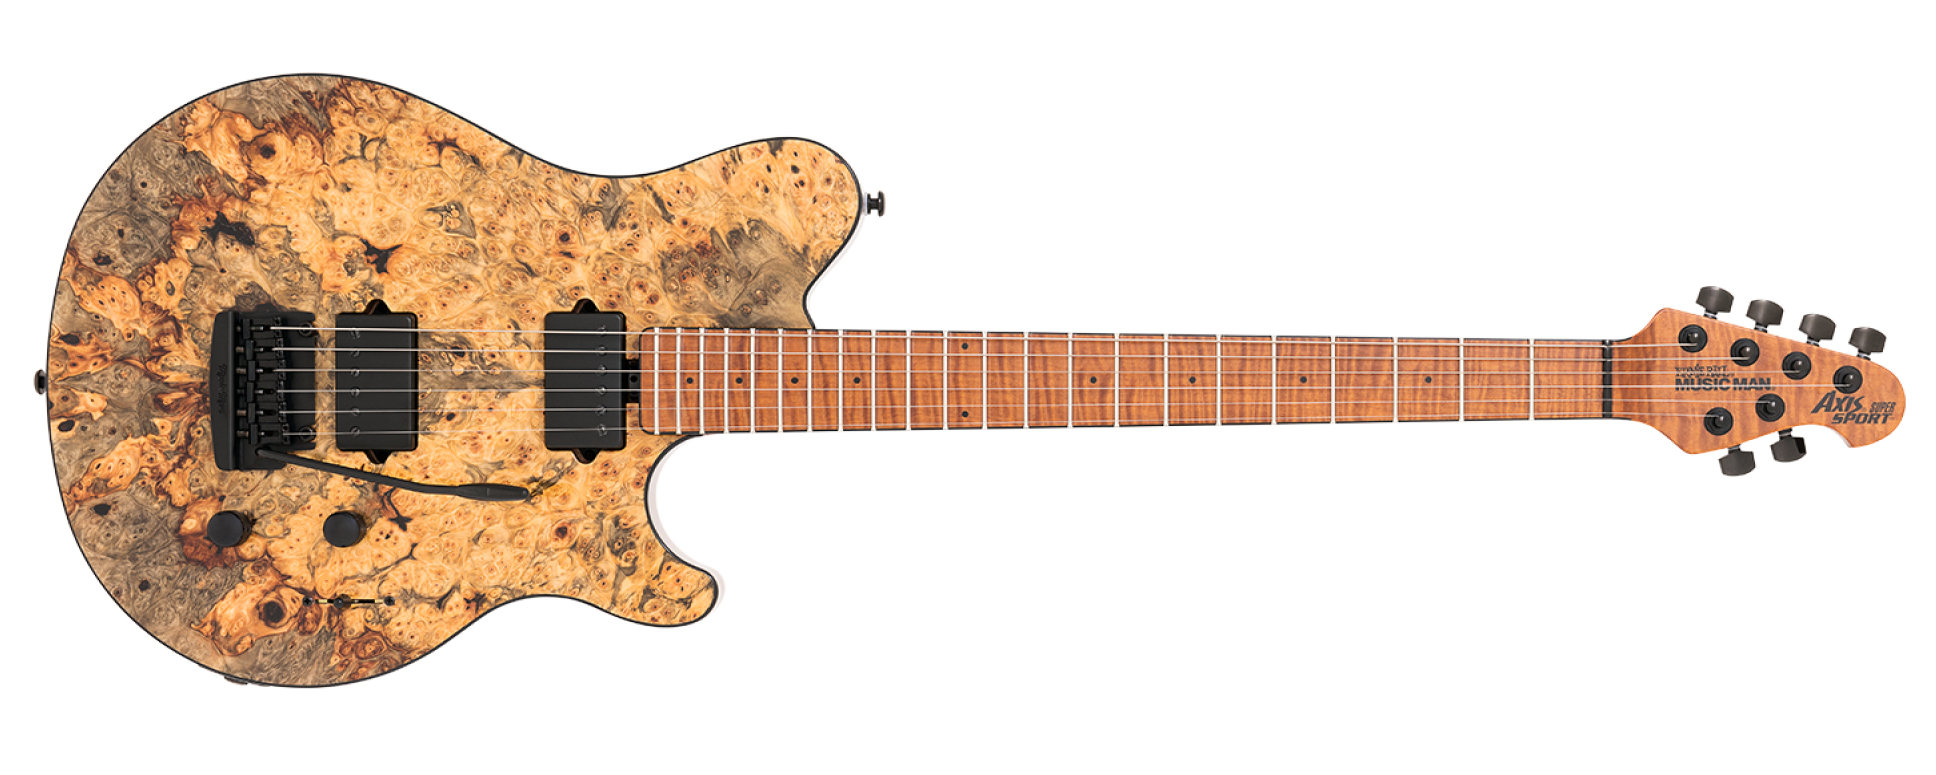 Ernie Ball Music Man Announces Ball Family Reserve April